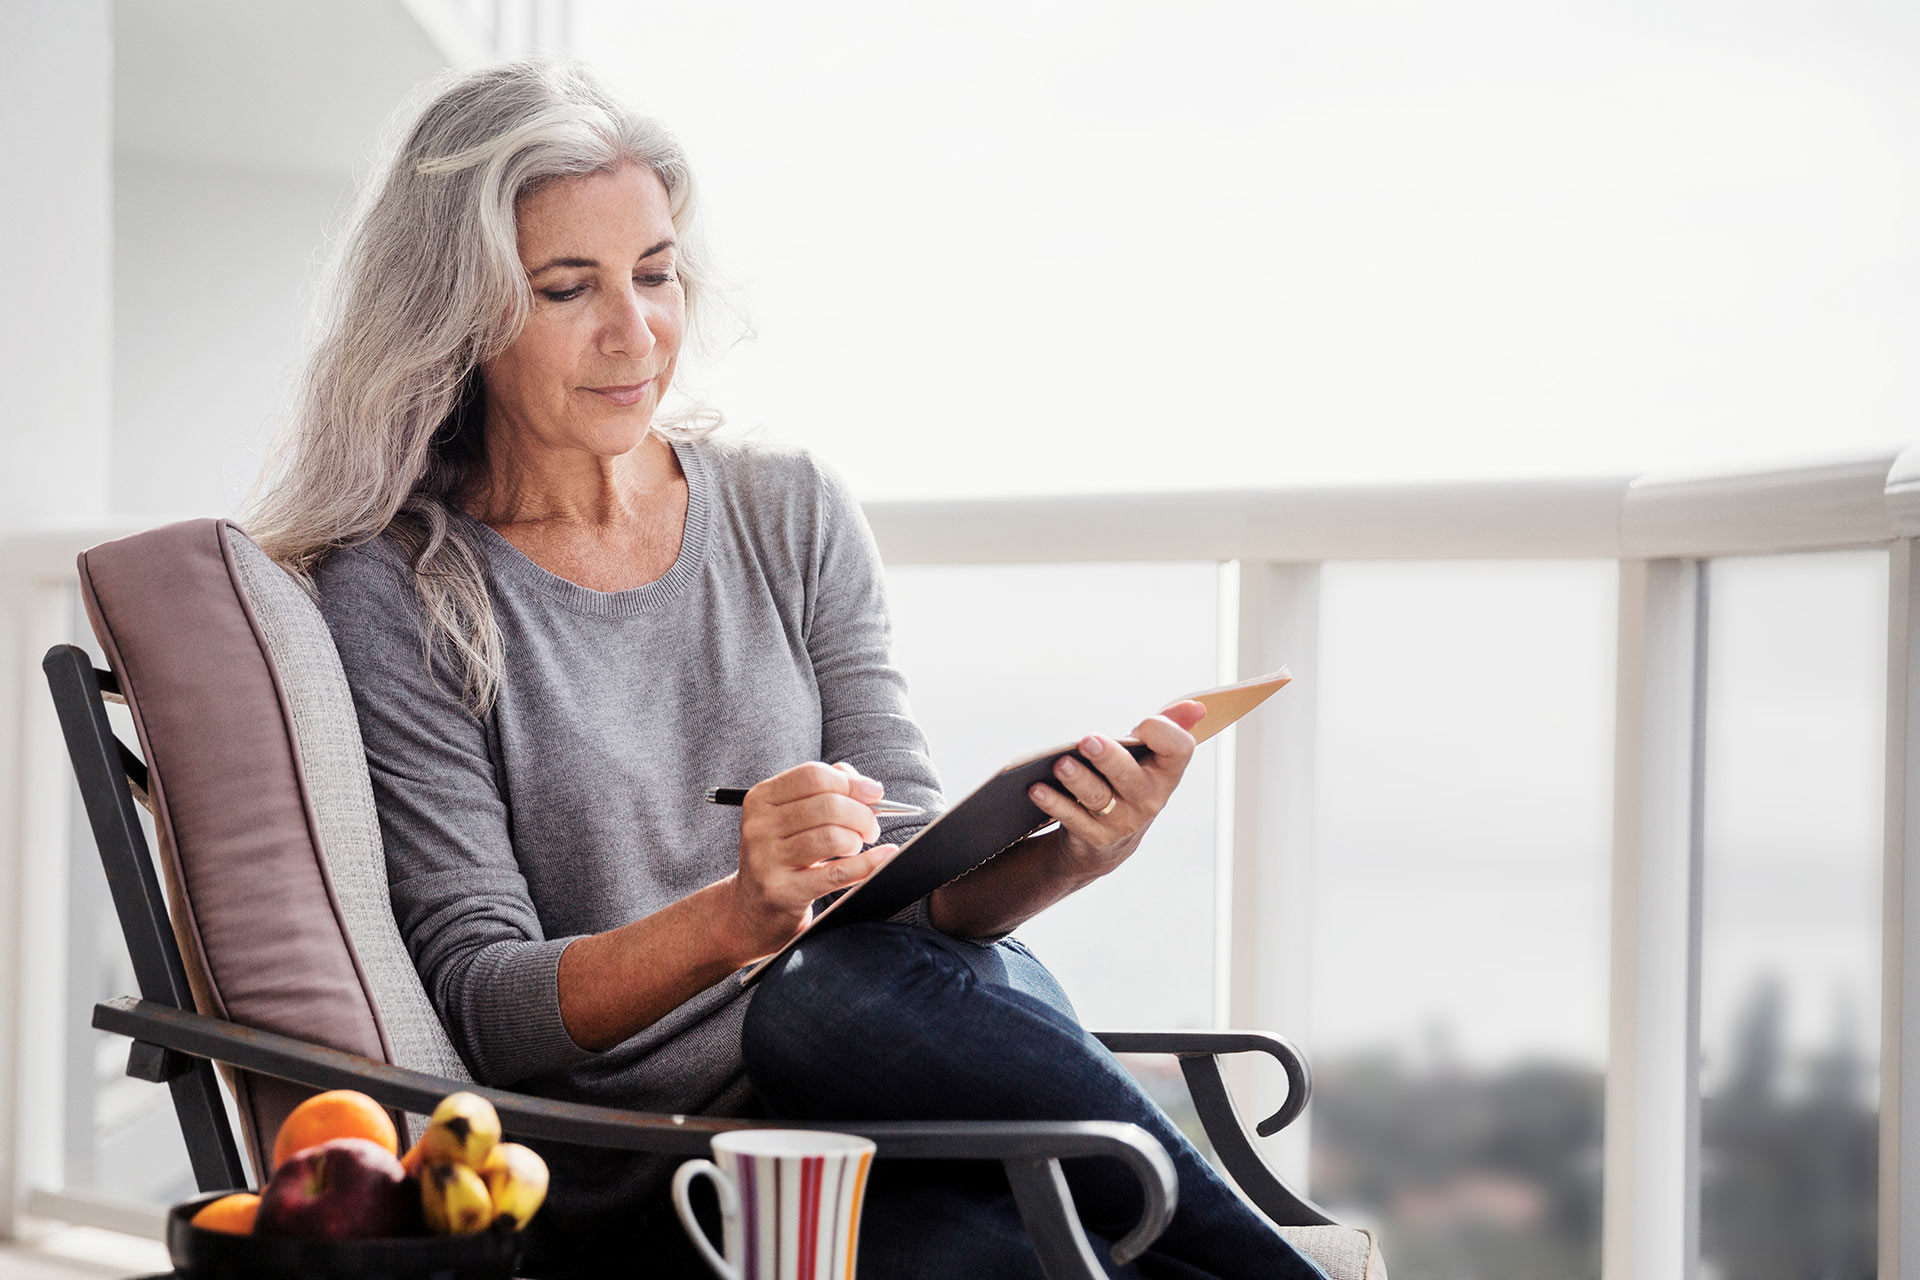 woman with long silver hair writing in journal on balcony